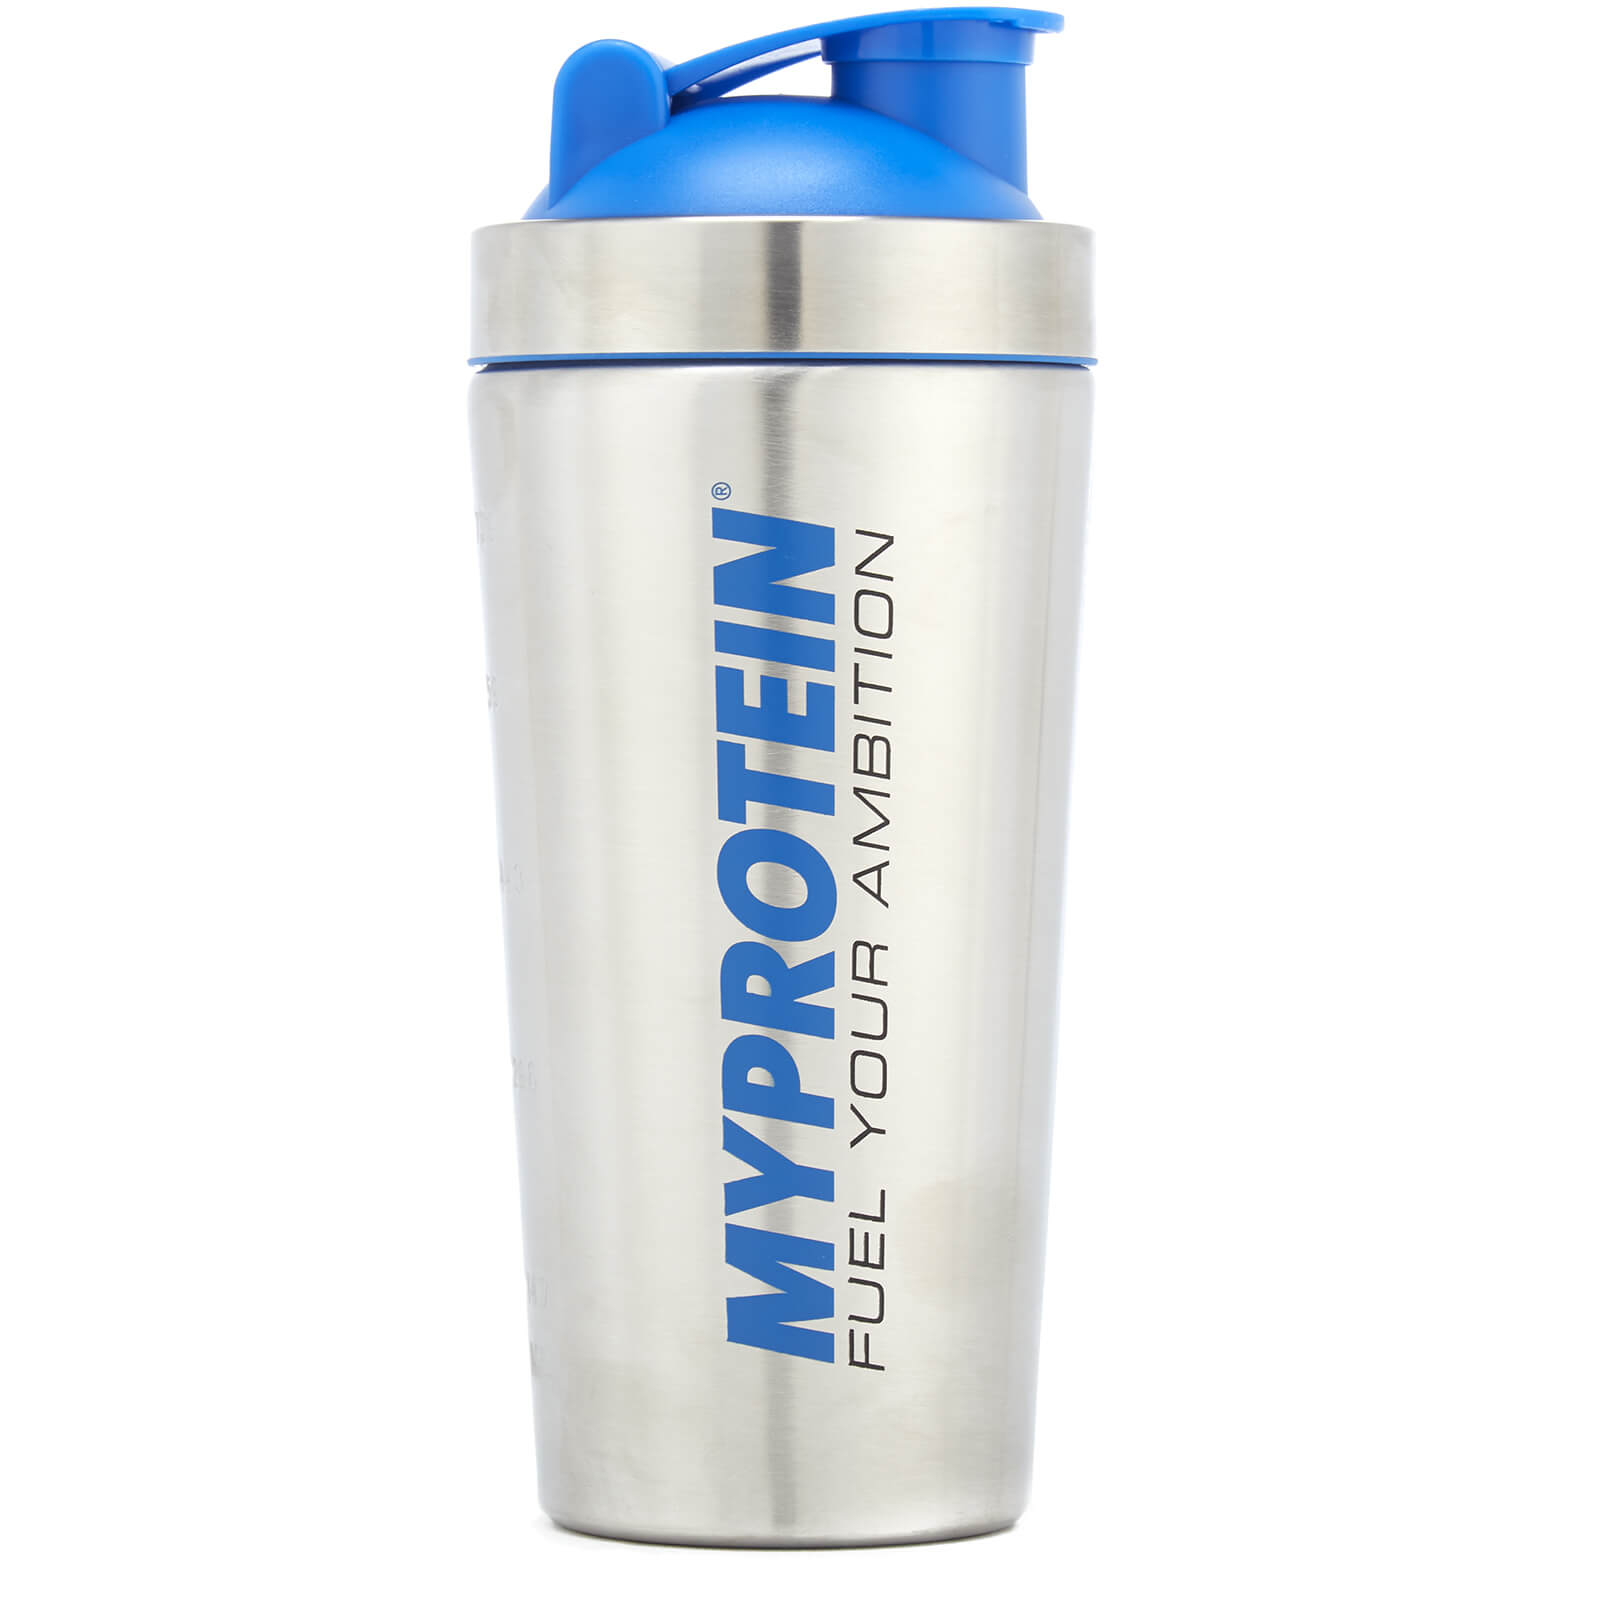 Buy Stainless Steel Shaker | Myprotein.com